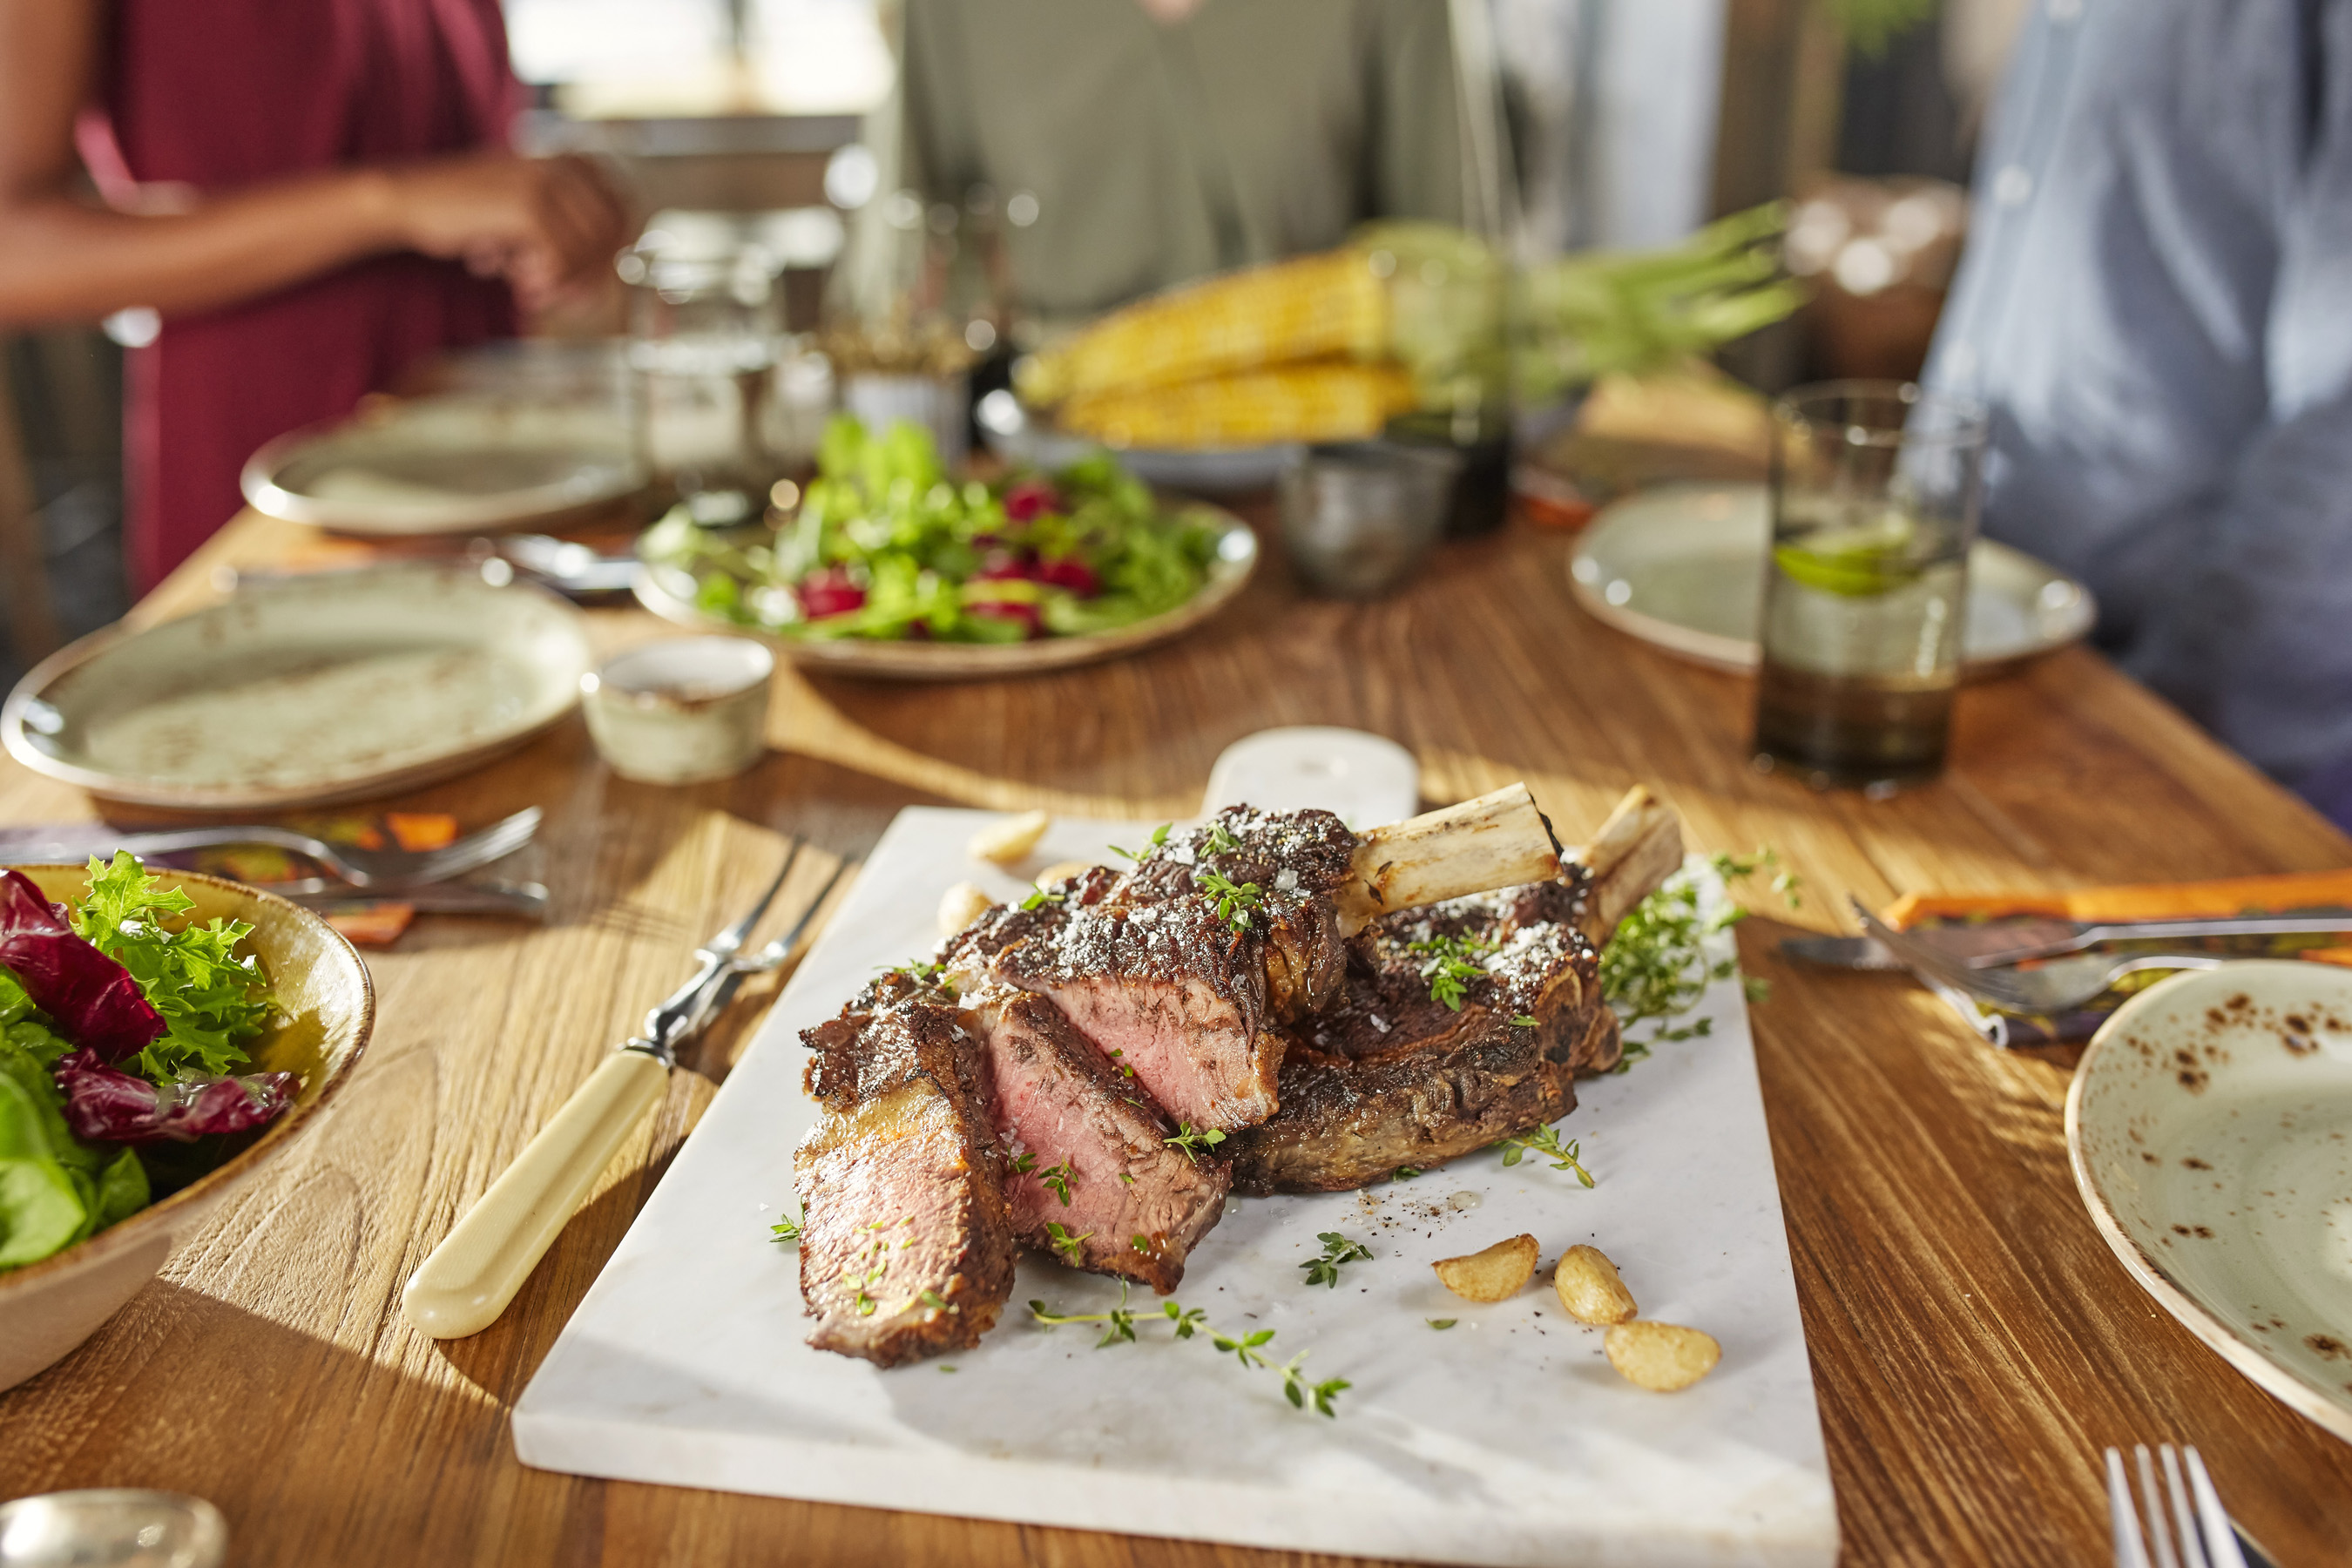 New Zealand grass-fed, pasture-raised beef and lamb is praised by chefs, retailers and consumers all over the world.